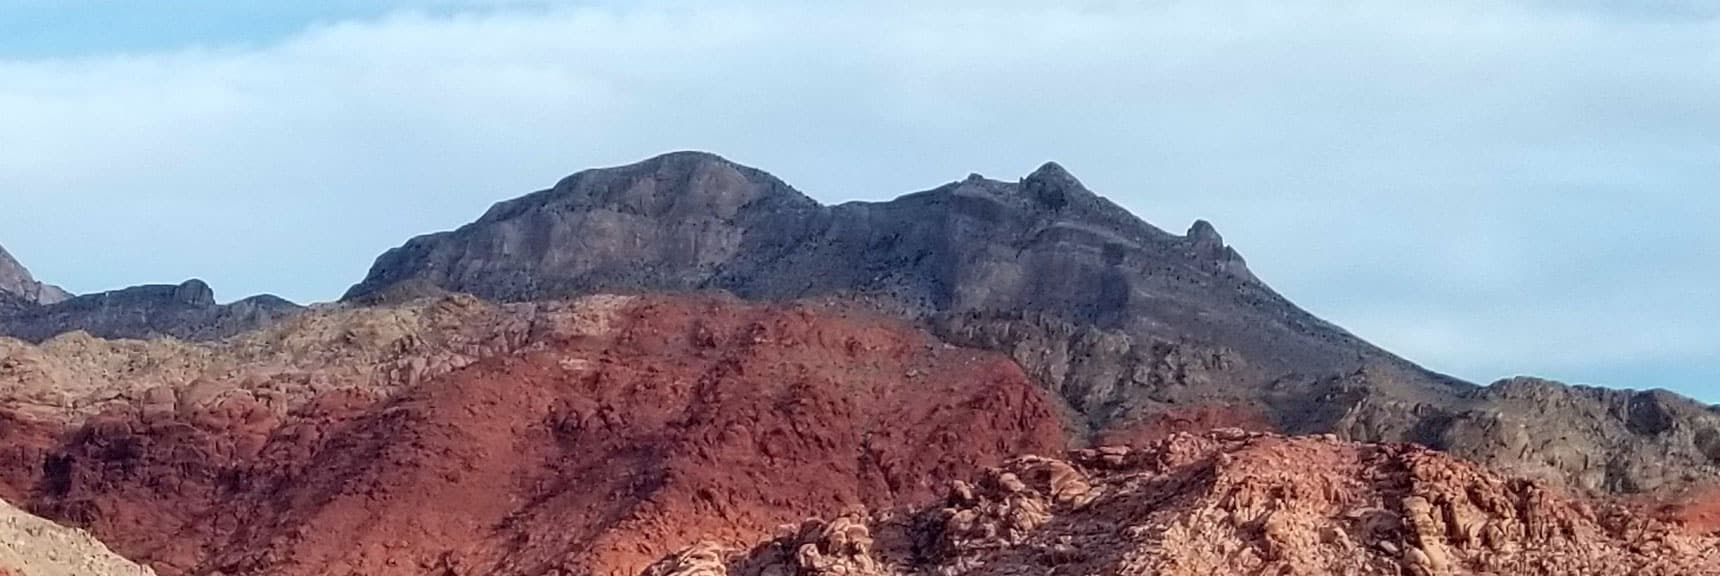 Damsel Peak Viewed from Calico Hills Summit, Calico Basin, Nevada